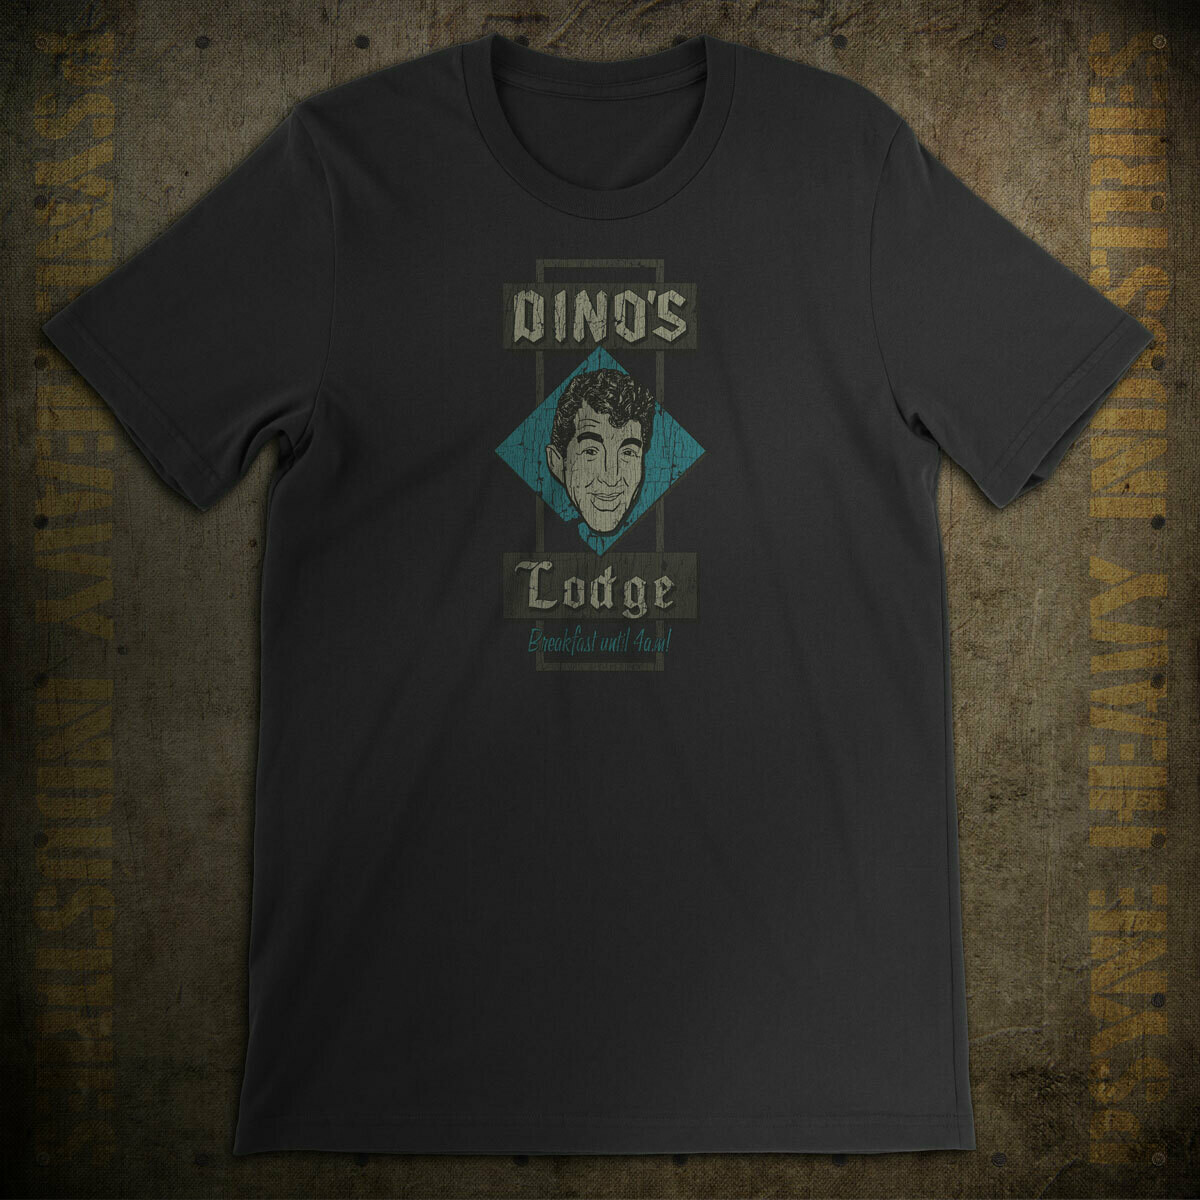 Dino's Lodge Vintage Hollywood T-Shirt